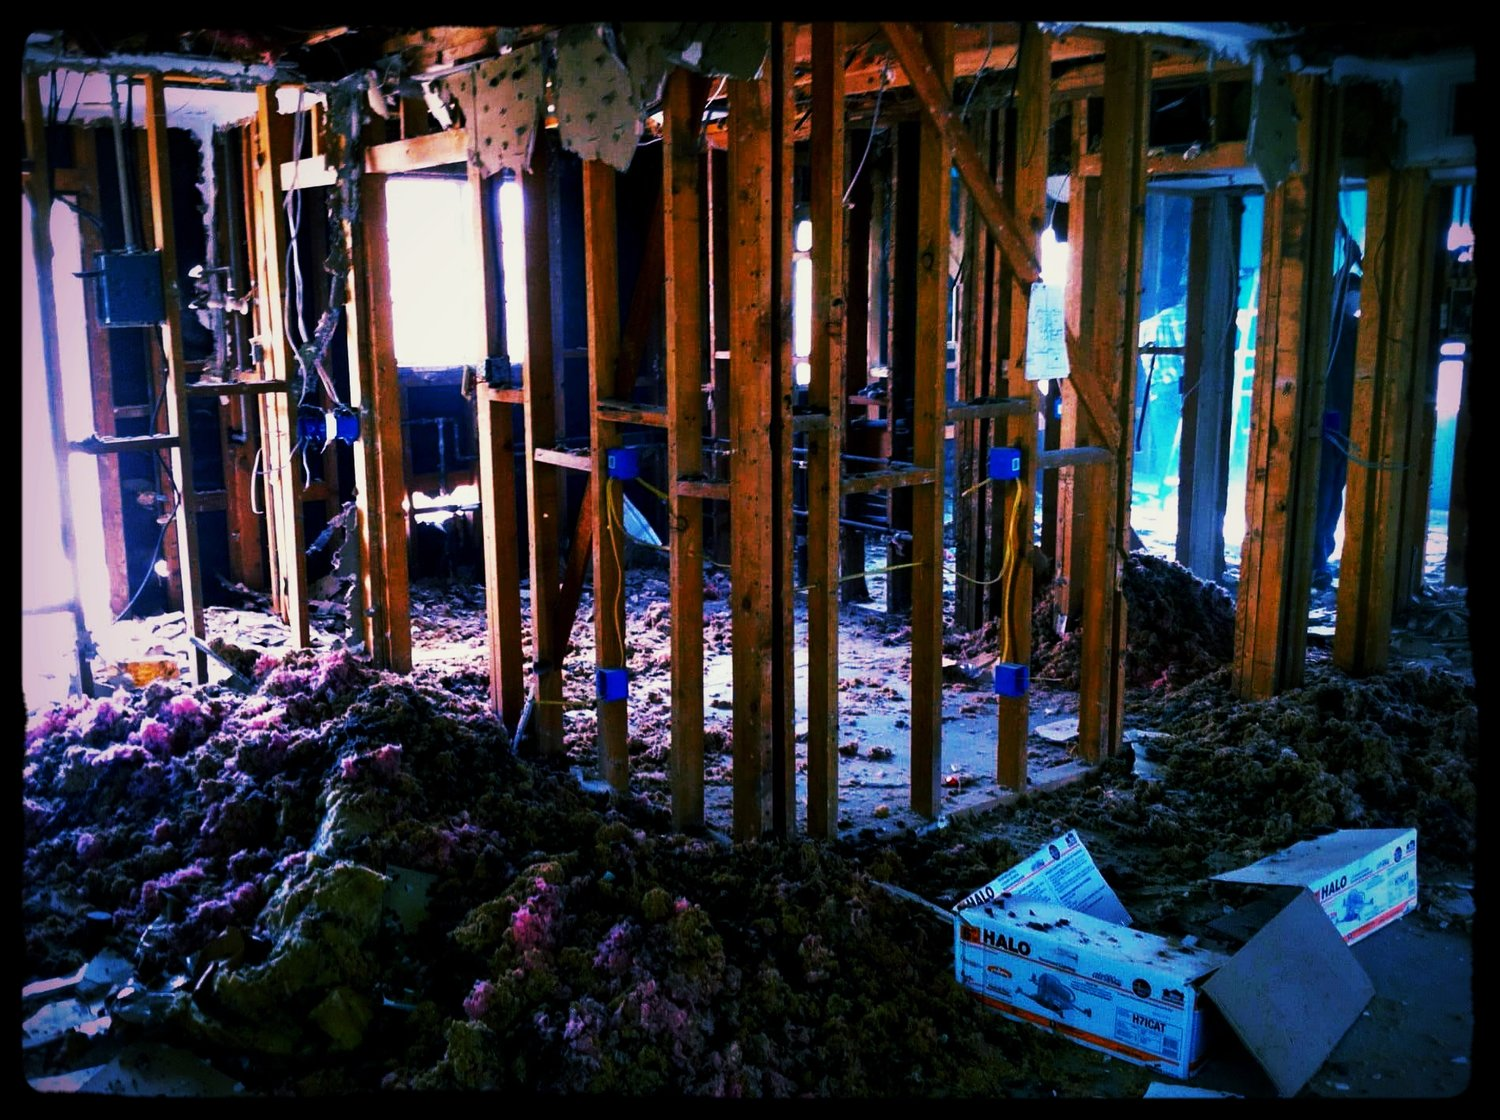 1 insulation removal home demolition junk removal mrjunk remodeling demolition insulation removal services solutioingenieria Image collections